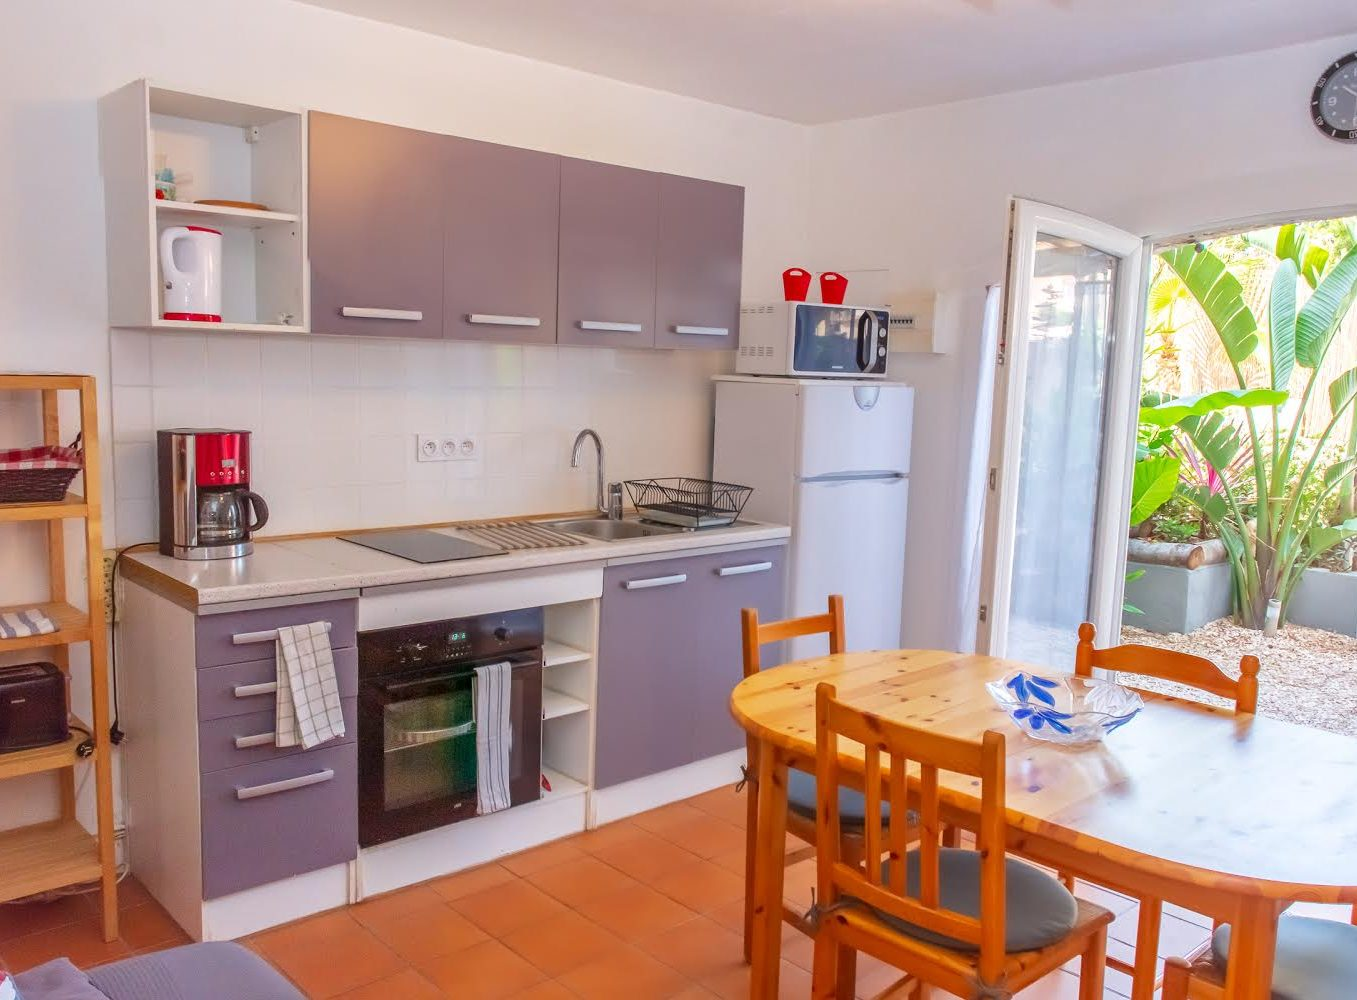 Rental apartment giens hyeres french riviera papa-iti pièce